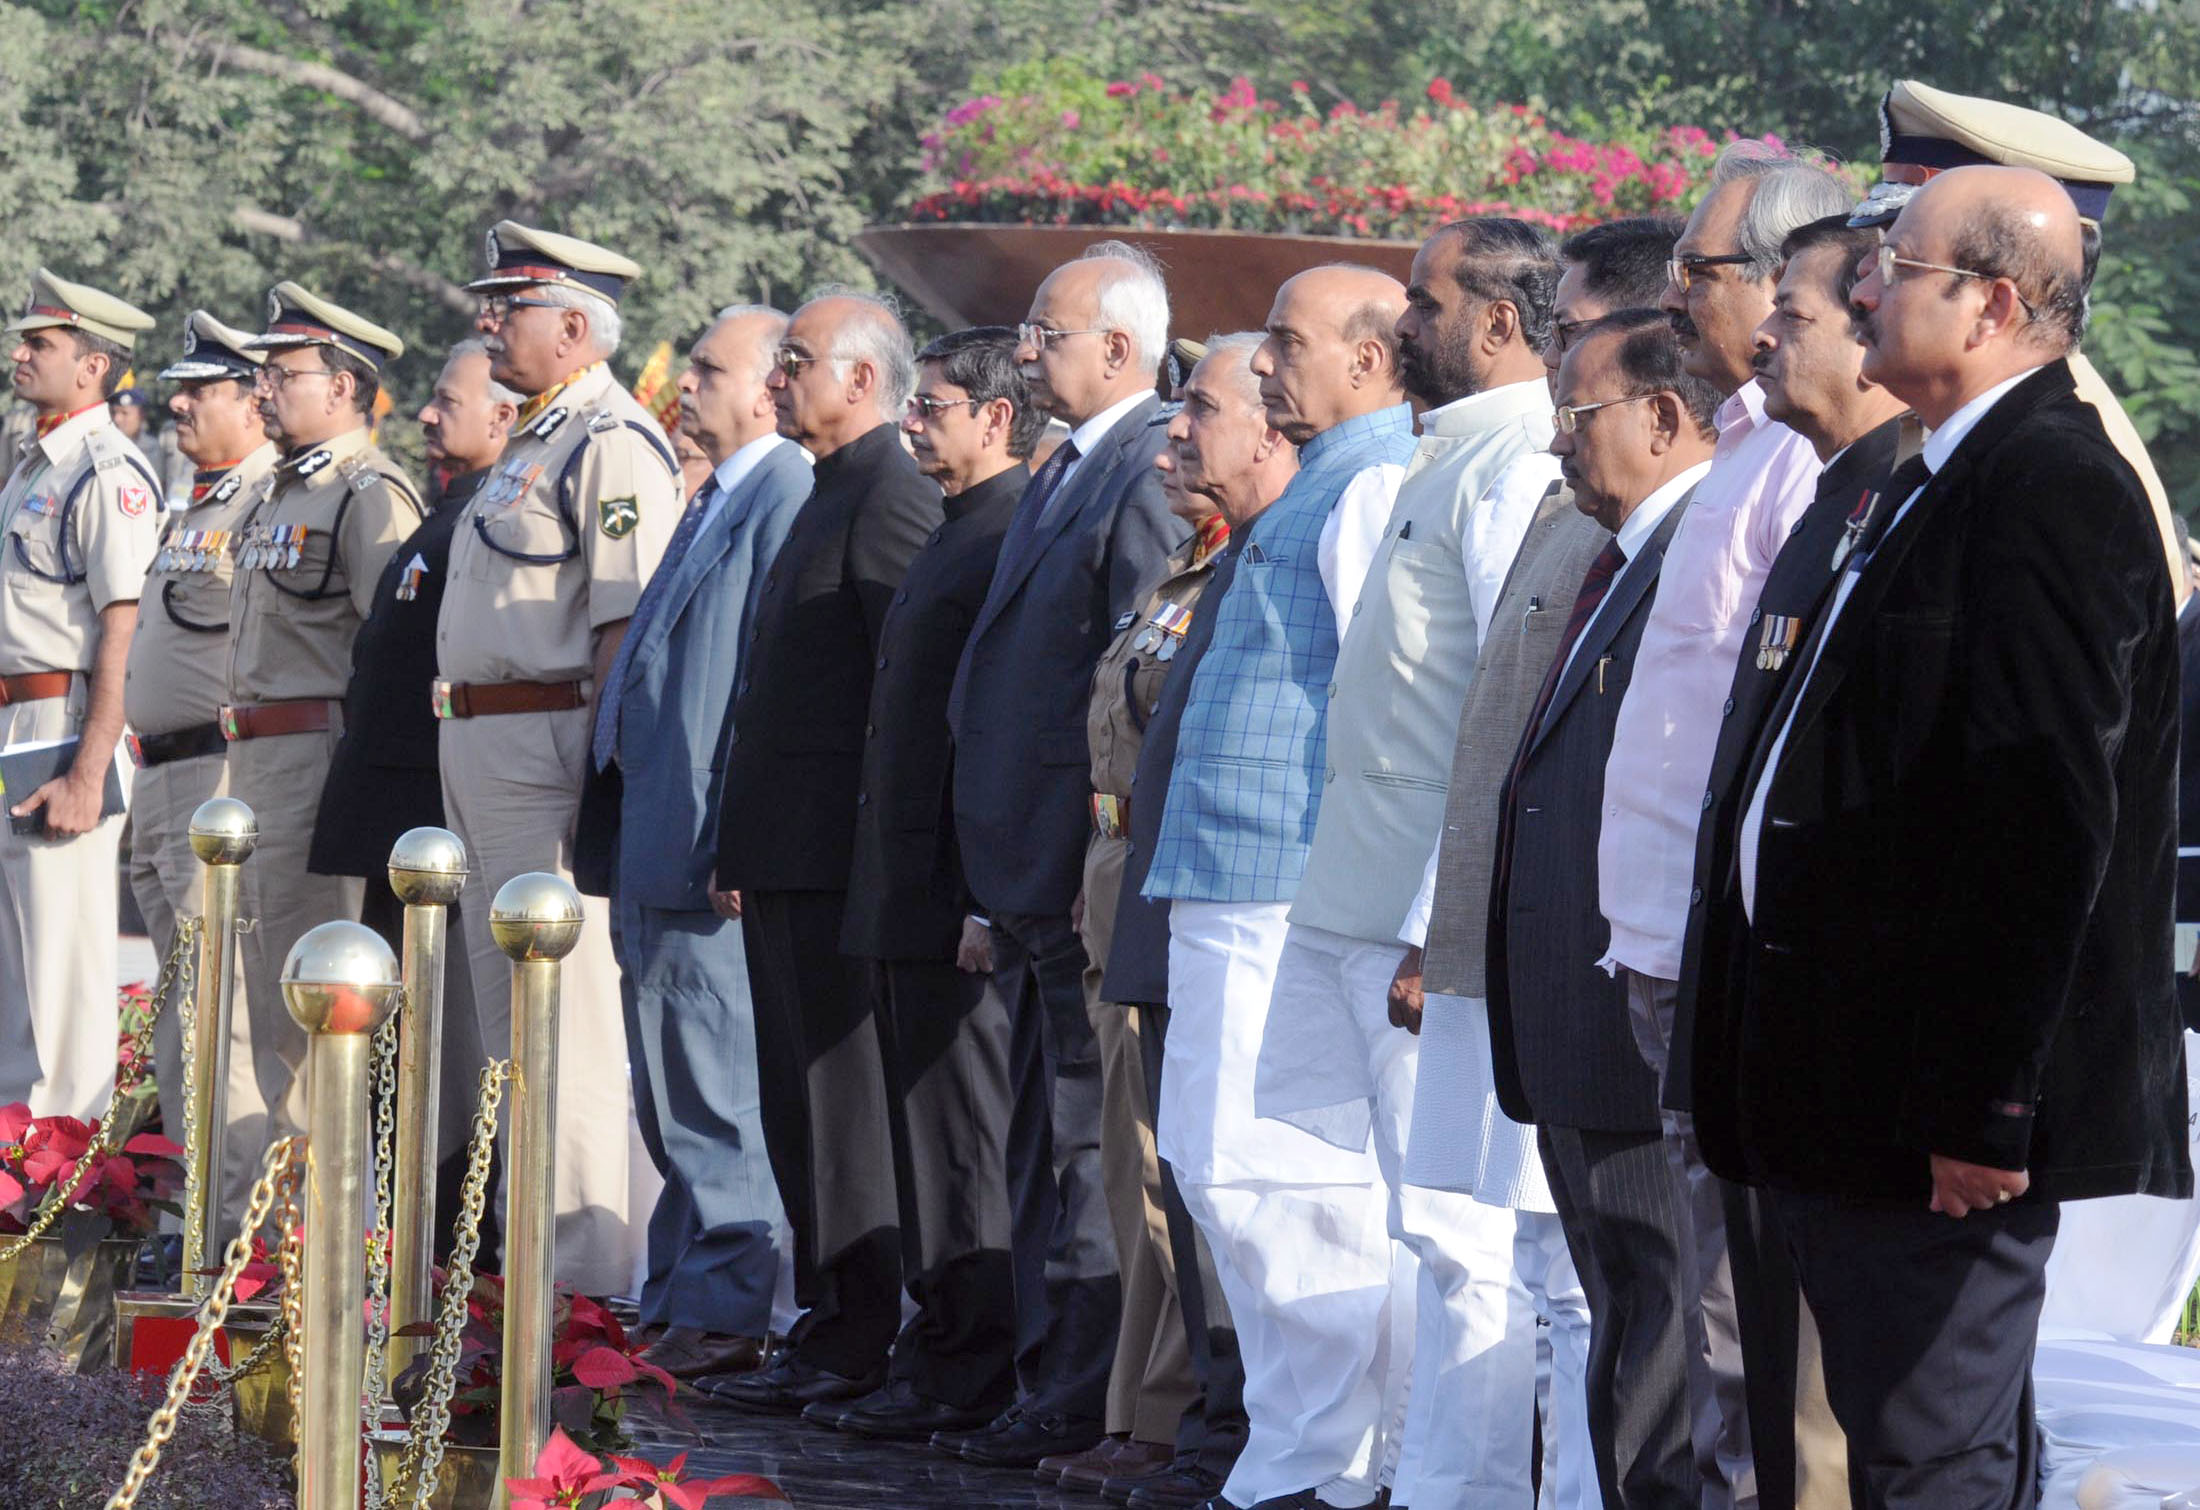 The Union Home Minister, Shri Rajnath Singh, the Minister of State for Home Affairs, Shri Hansraj Gangaram Ahir, the Minister of State for Home Affairs, Shri Kiren Rijiju and other dignitaries, at the Police Commemoration Day Parade, in New Delhi on October 21, 2016.